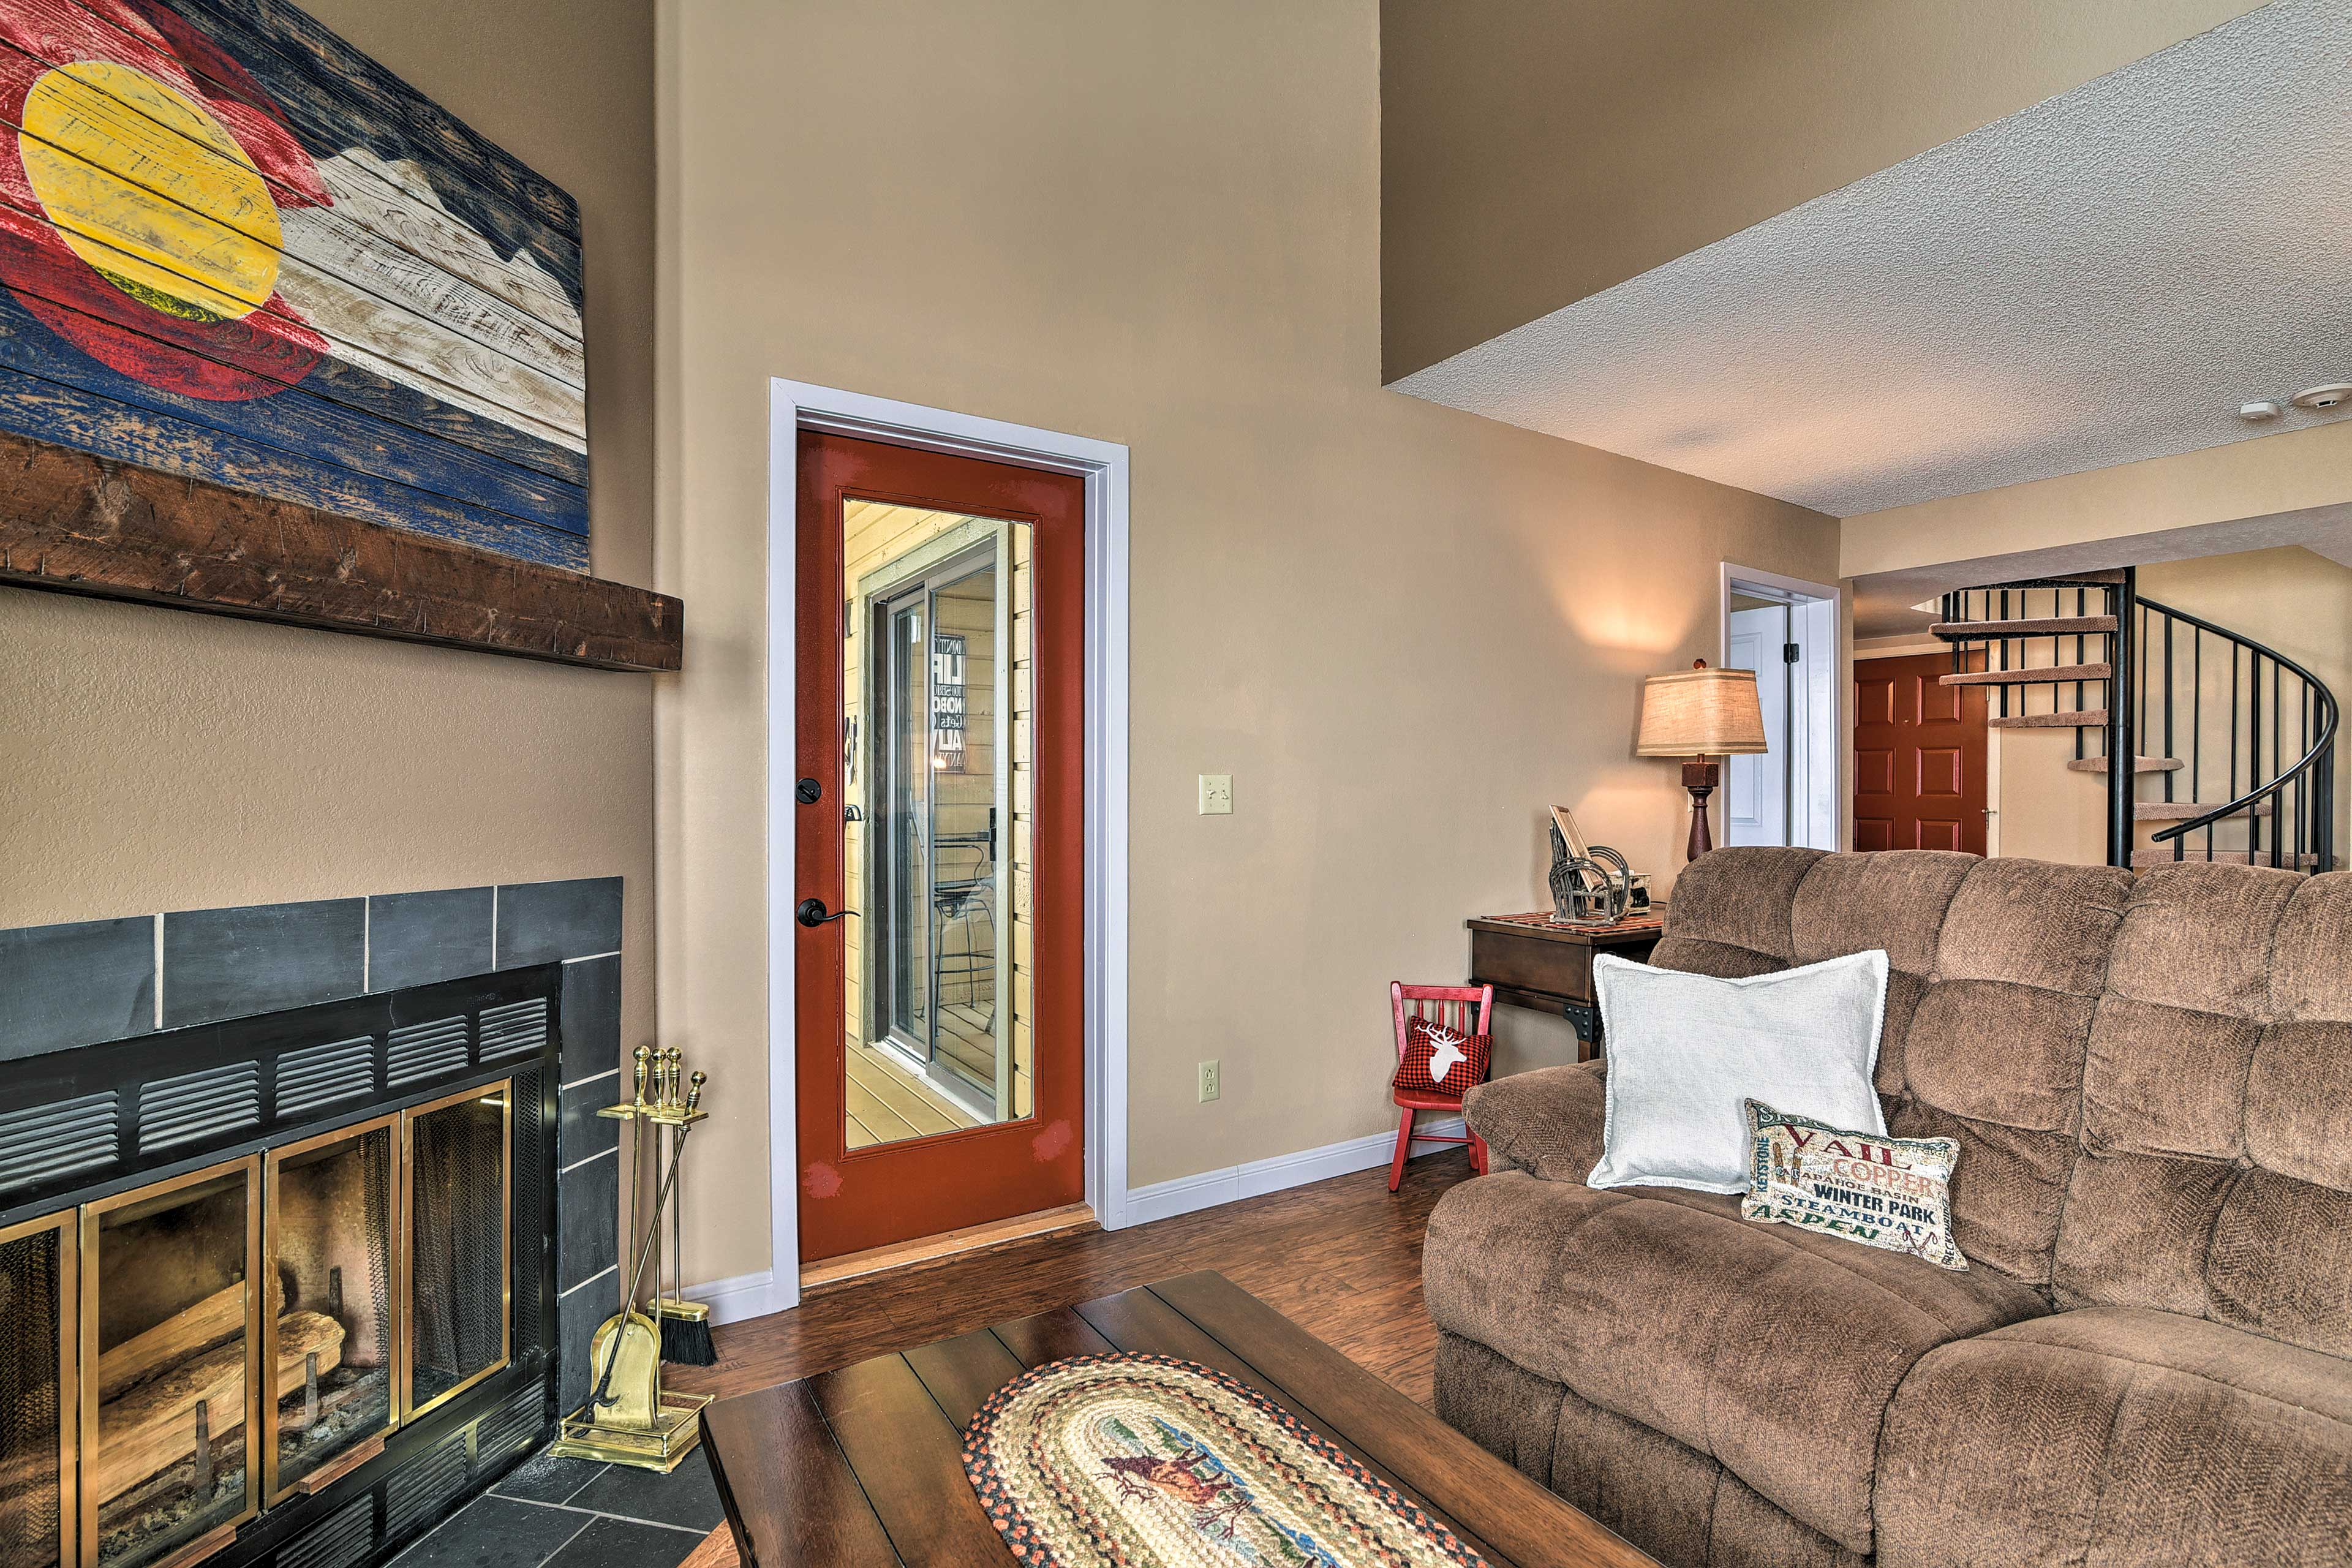 Neighboring the fireplace is a Smart TV and a door to access the balcony.